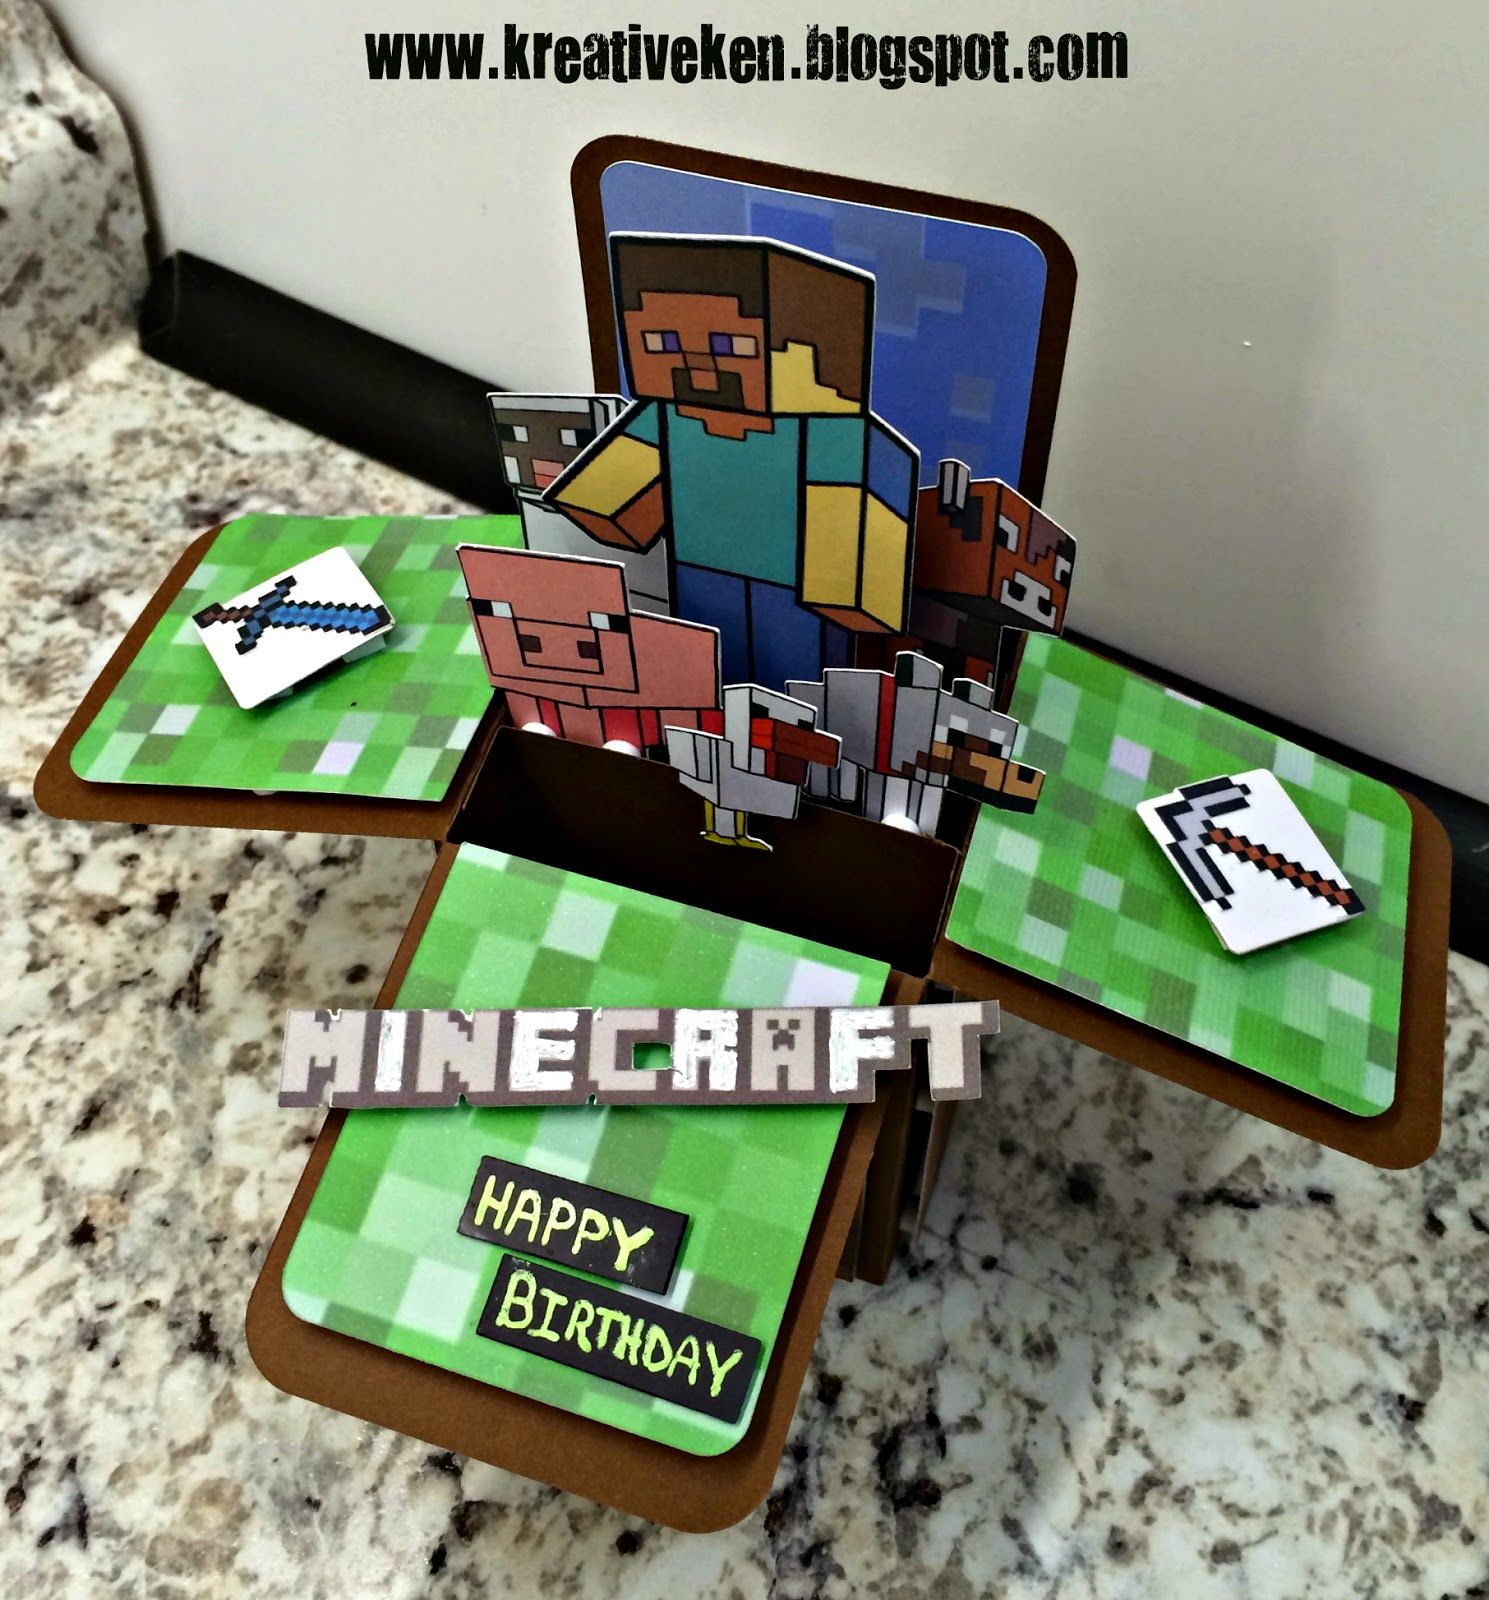 Minecraft birthday card cricut explore pinterest minecraft minecraft birthday card bookmarktalkfo Image collections